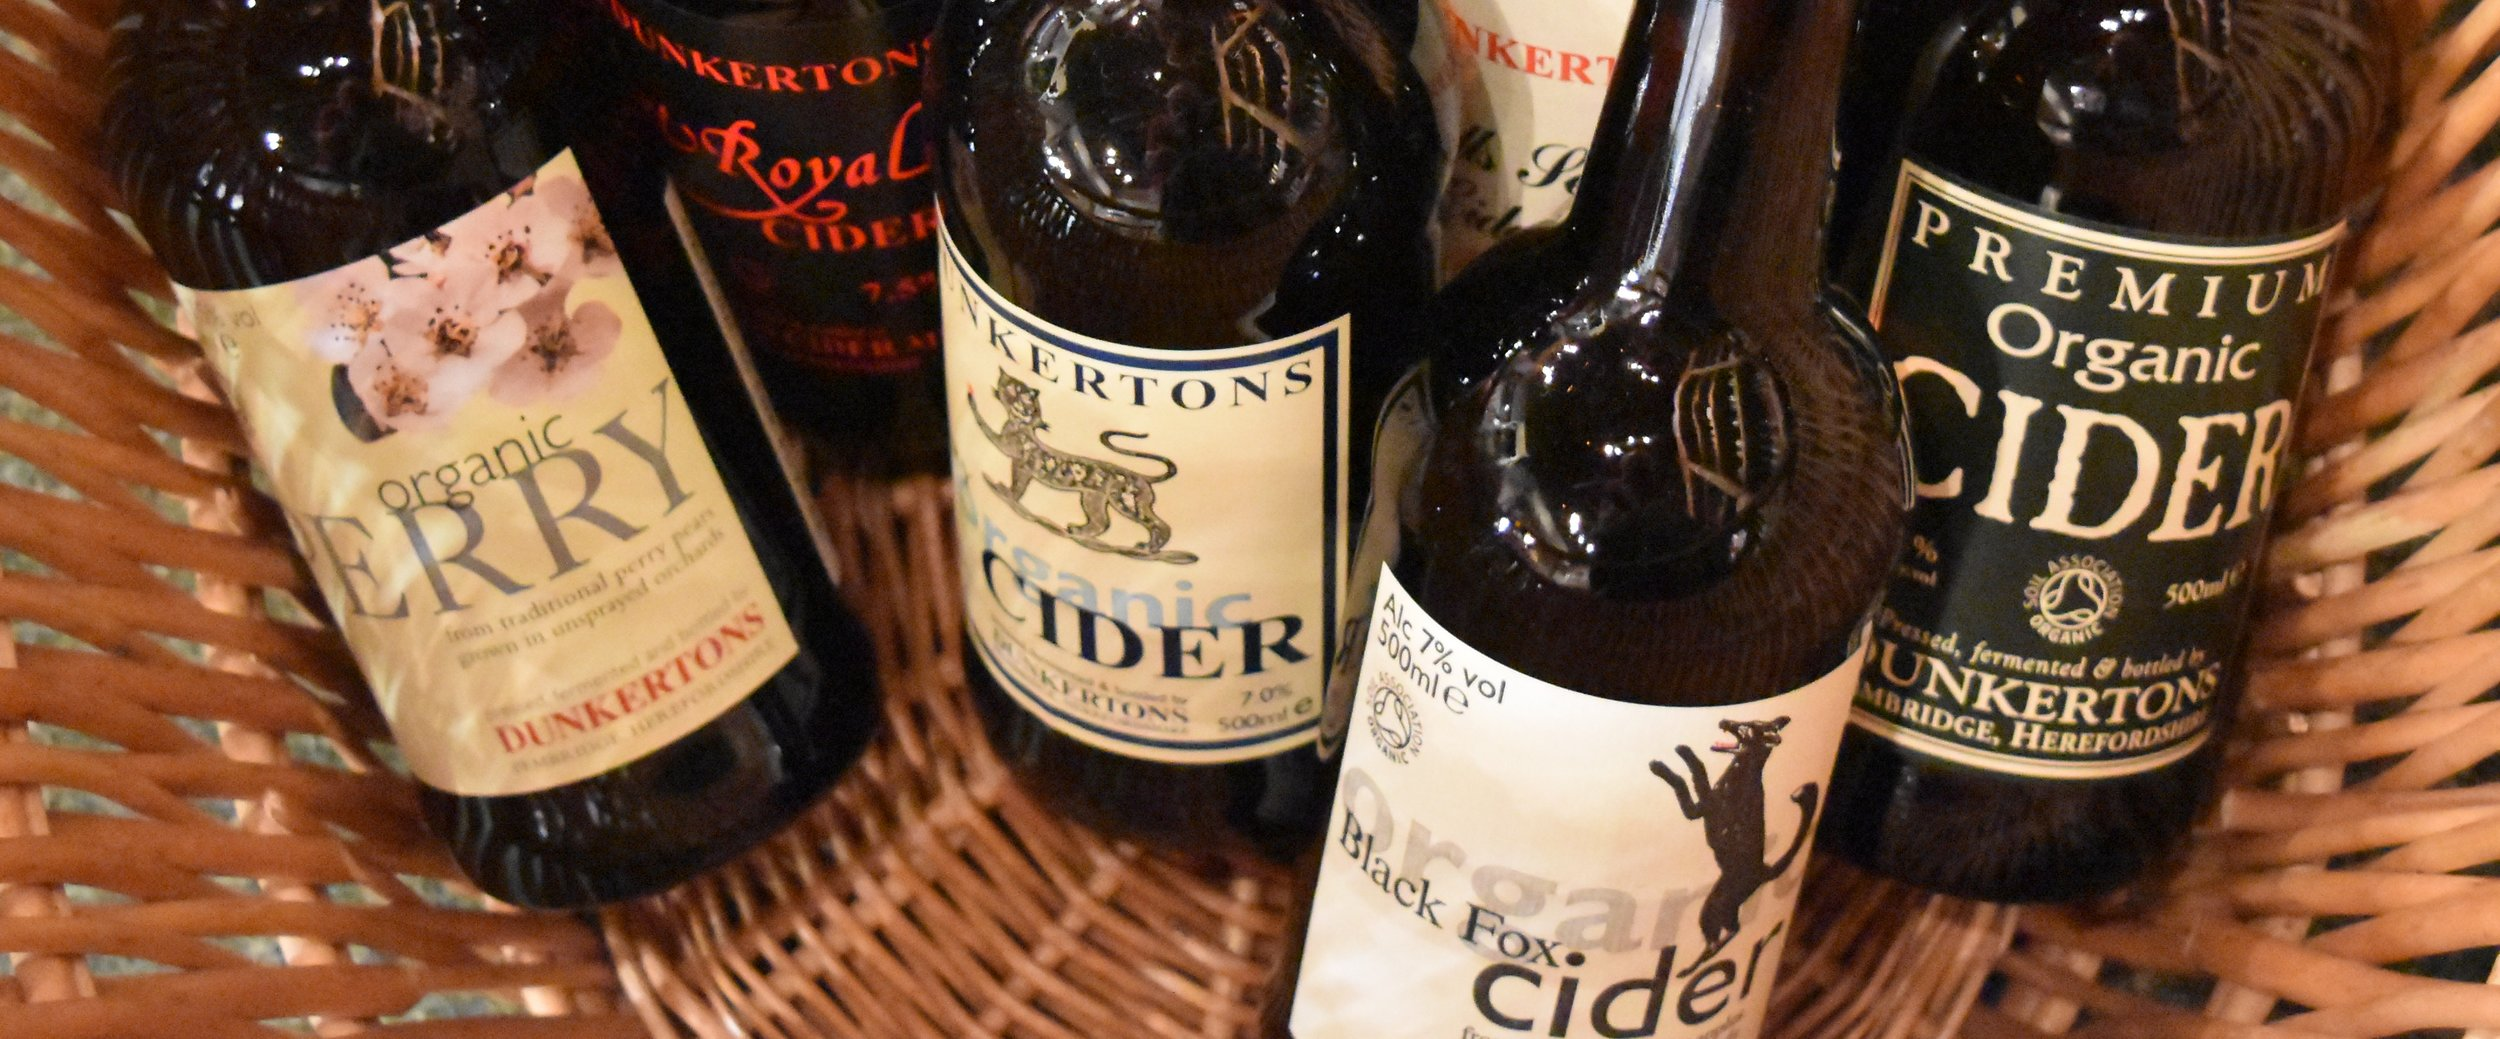 We have over 15 different ciders and perries. These are some from the Dunkertons Organic range.